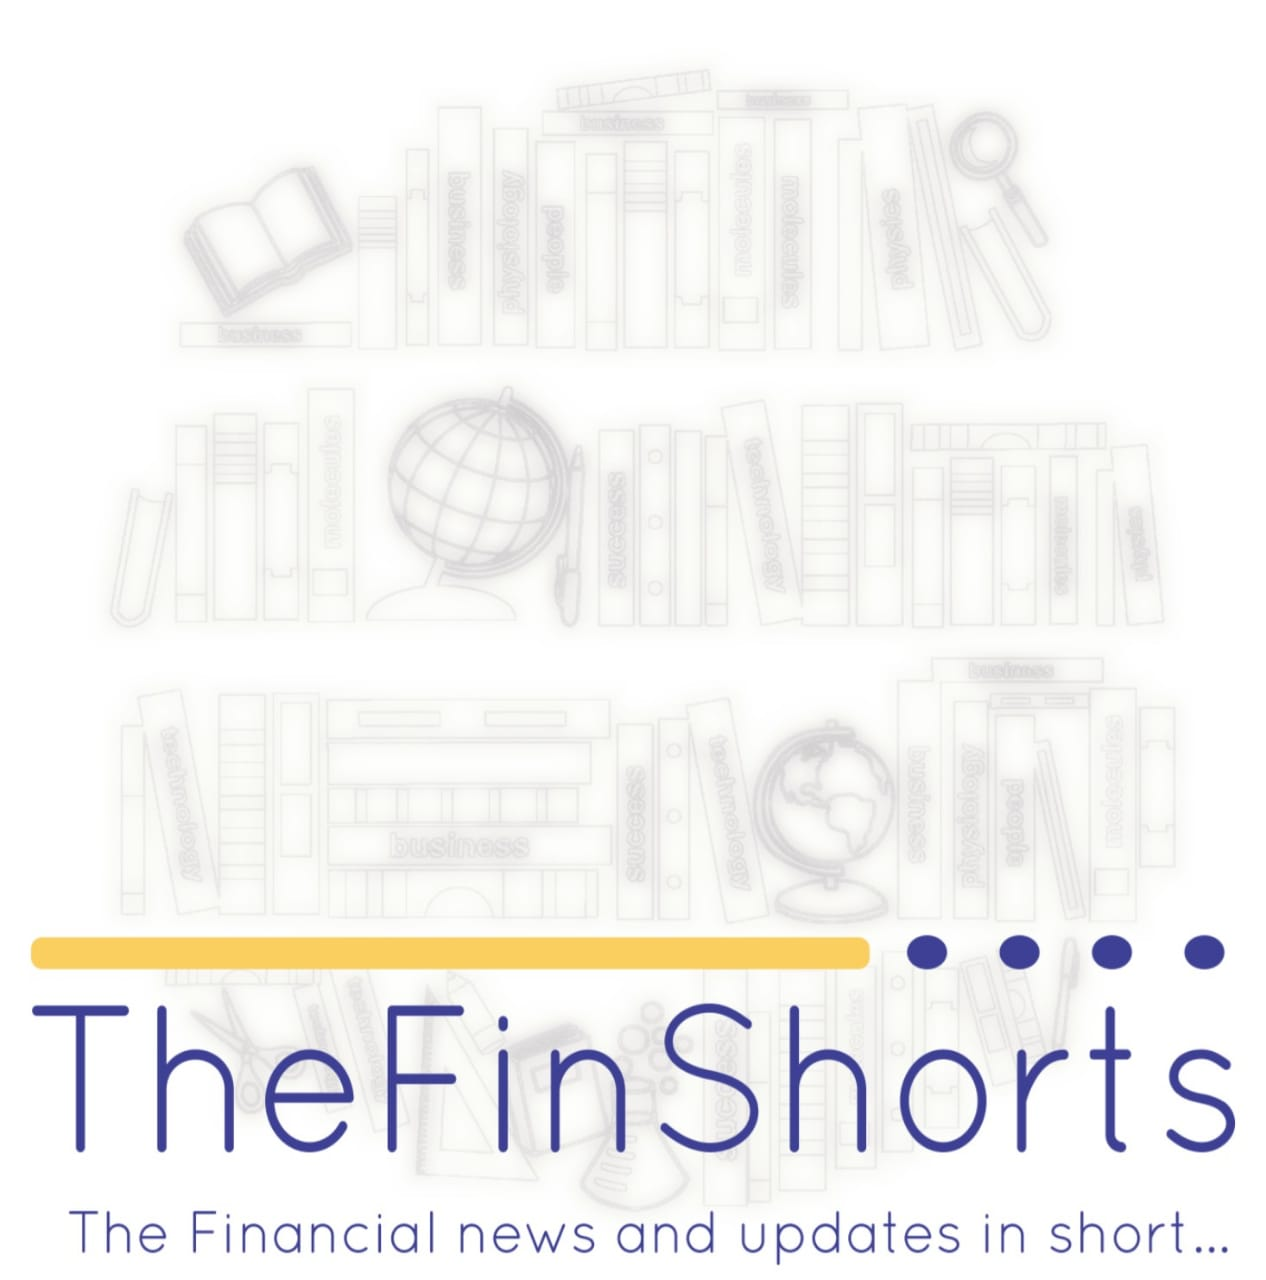 The FinShorts